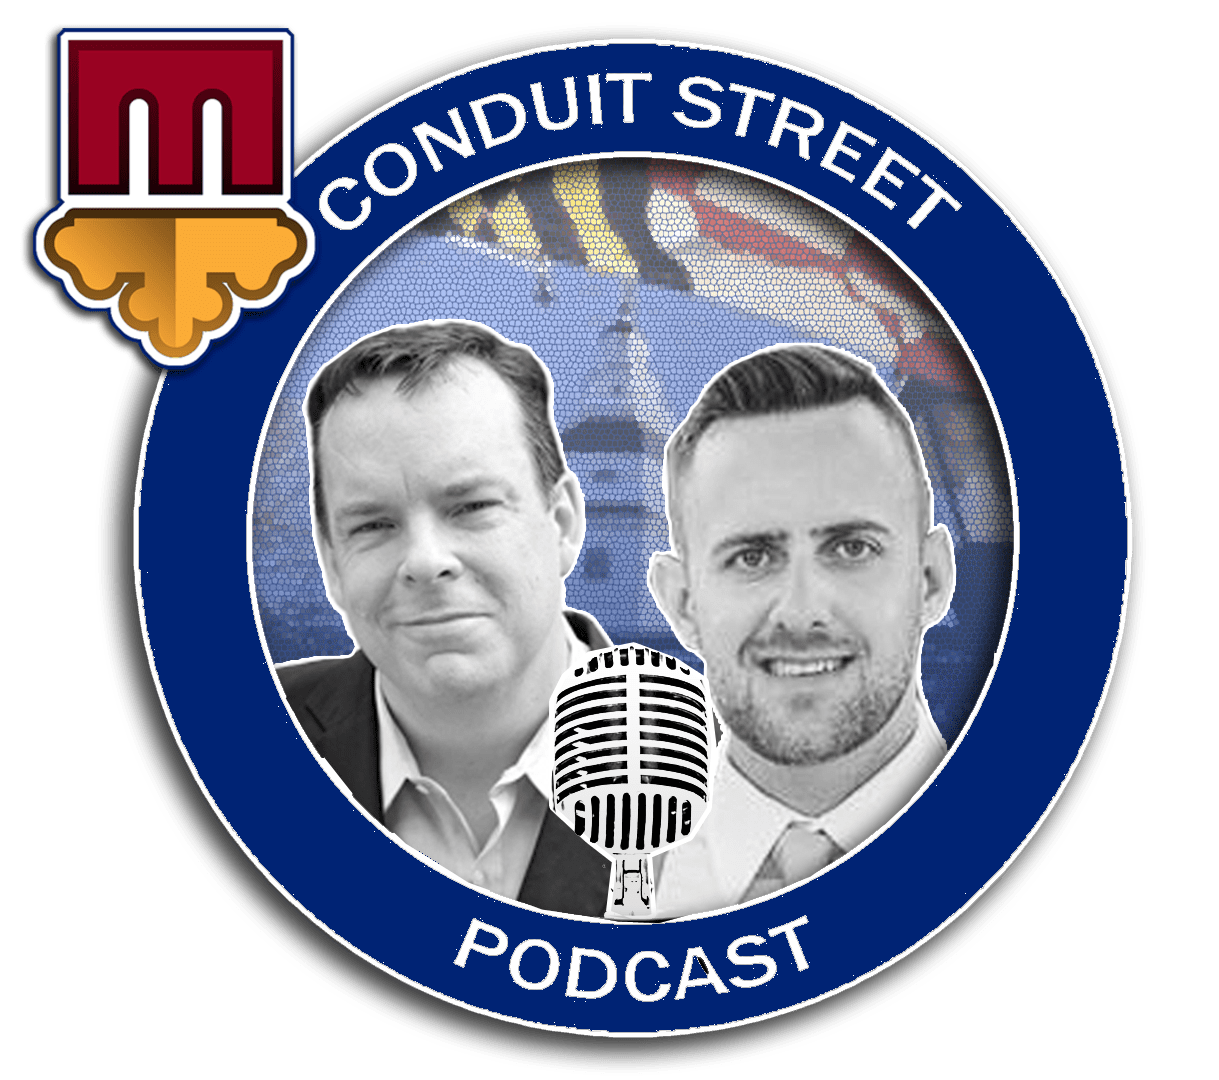 Conduit Street Podcast Live at #MACoCon with MDP & the US Census